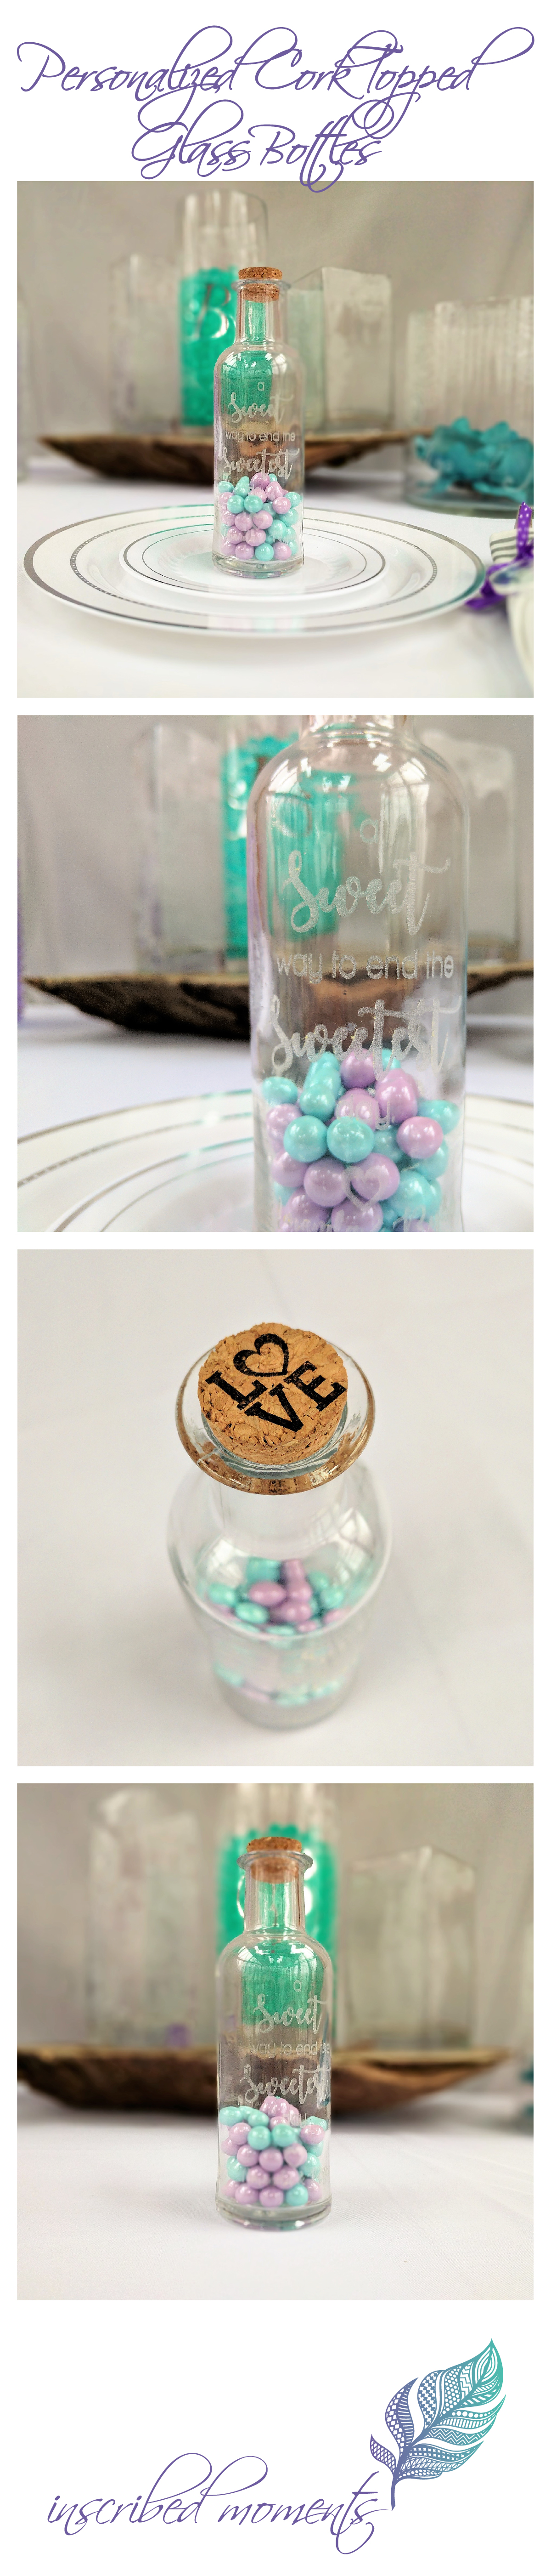 Personalized Cork Topped Glass Bottle Favors. Etched Wedding Guest ...